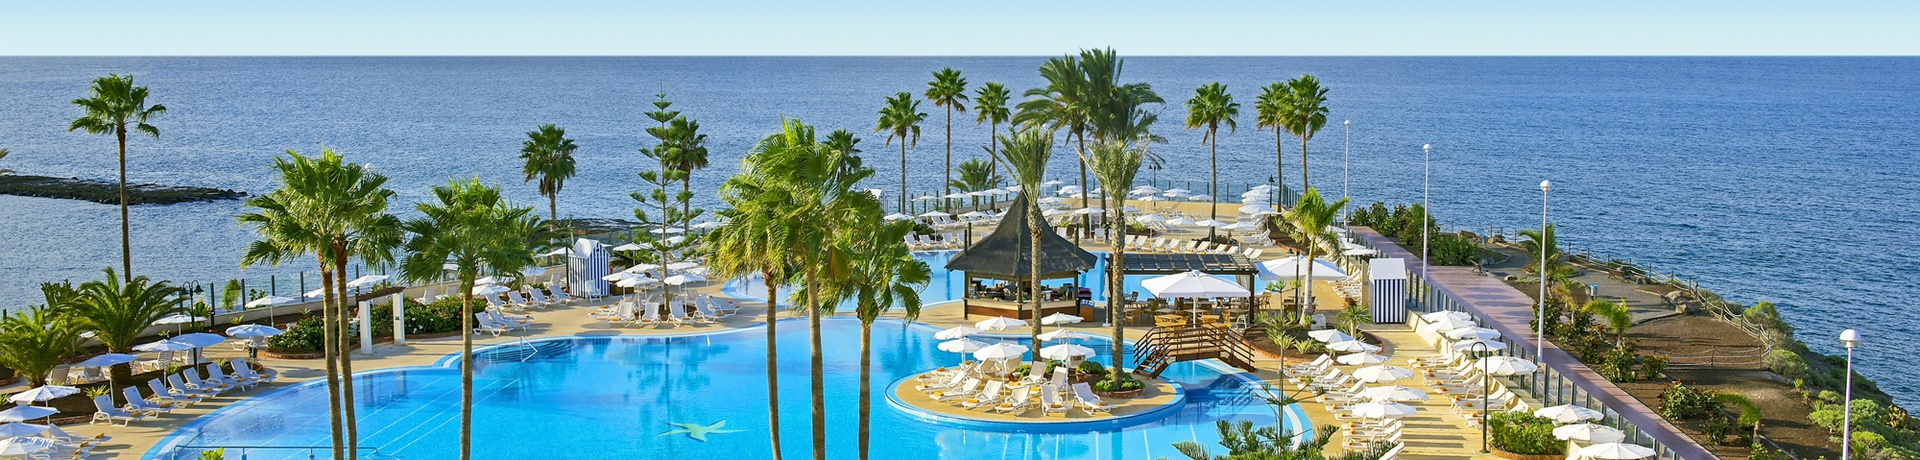 Iberostar Anthelia Weddings Abroad Get Married At The